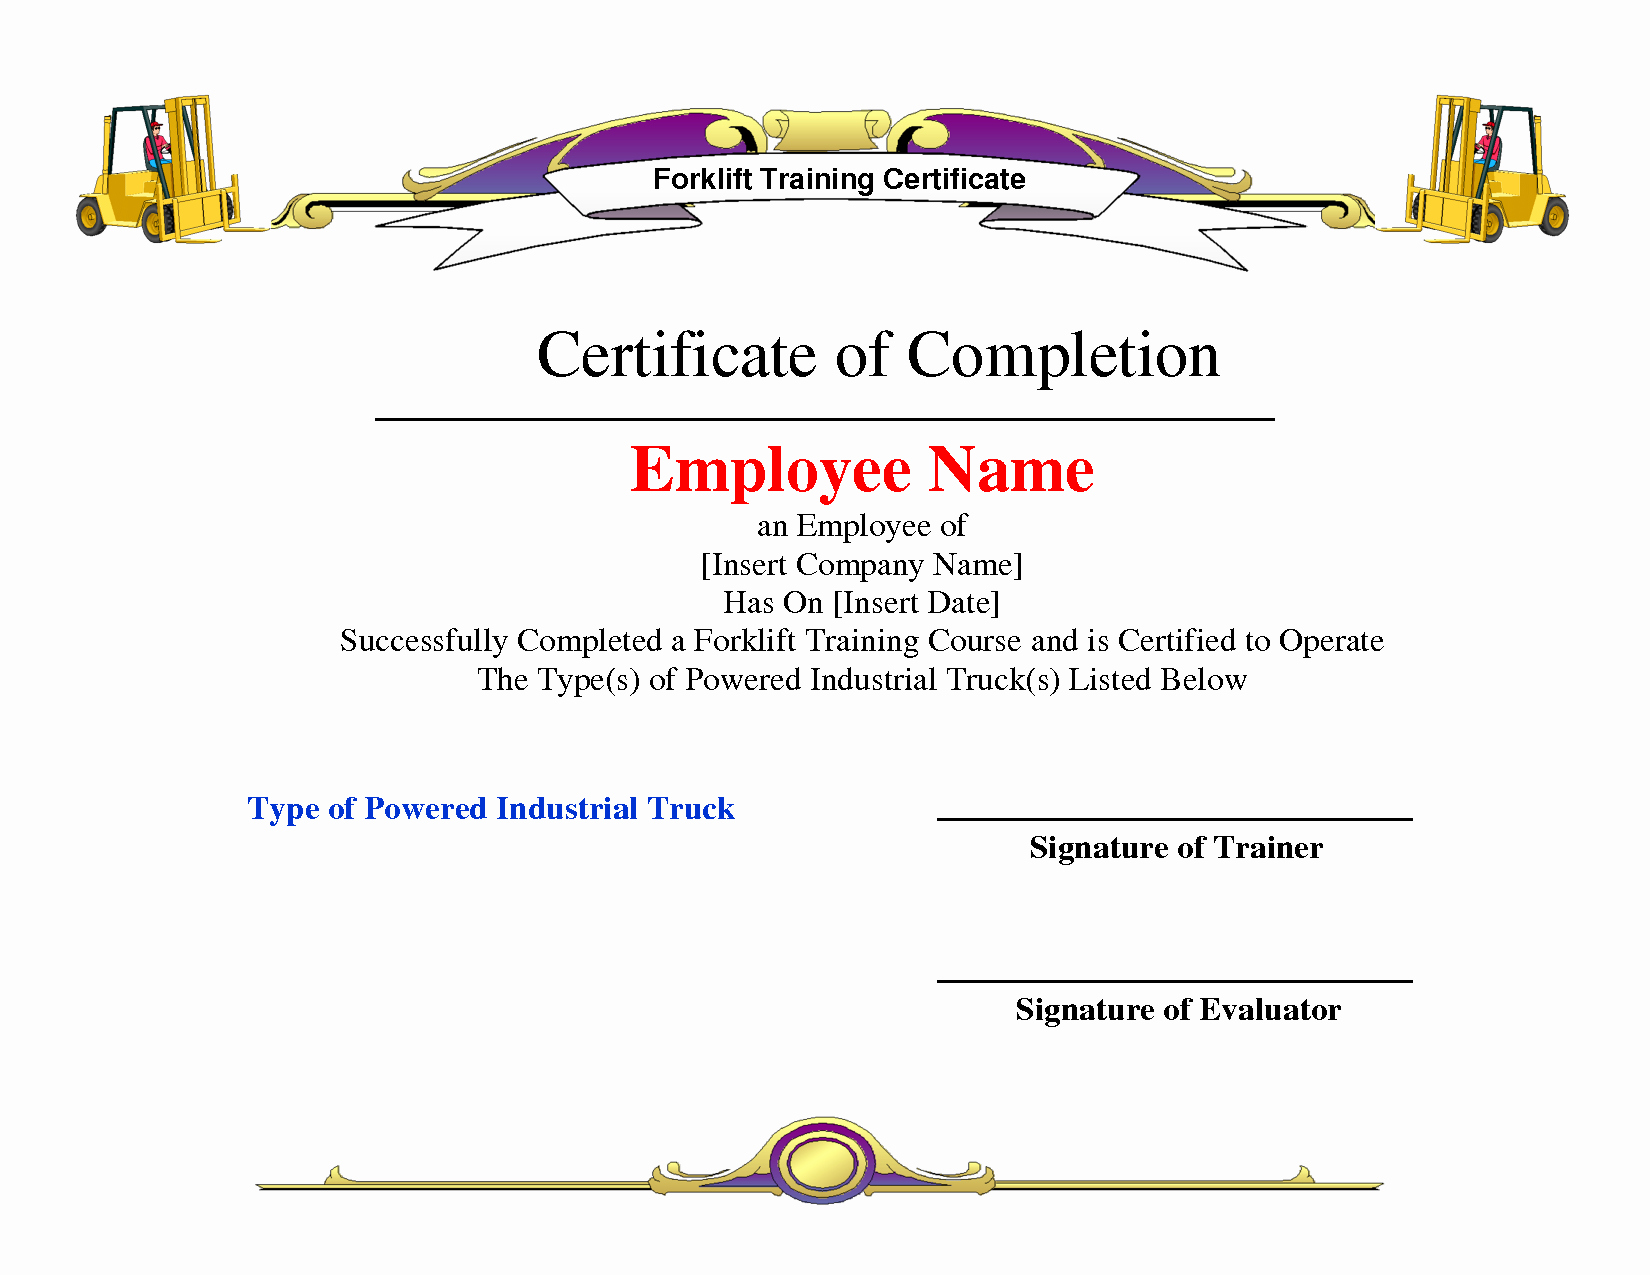 Forklift Training Certificate Template Free Unique Certificate Template Category Page 13 Efoza